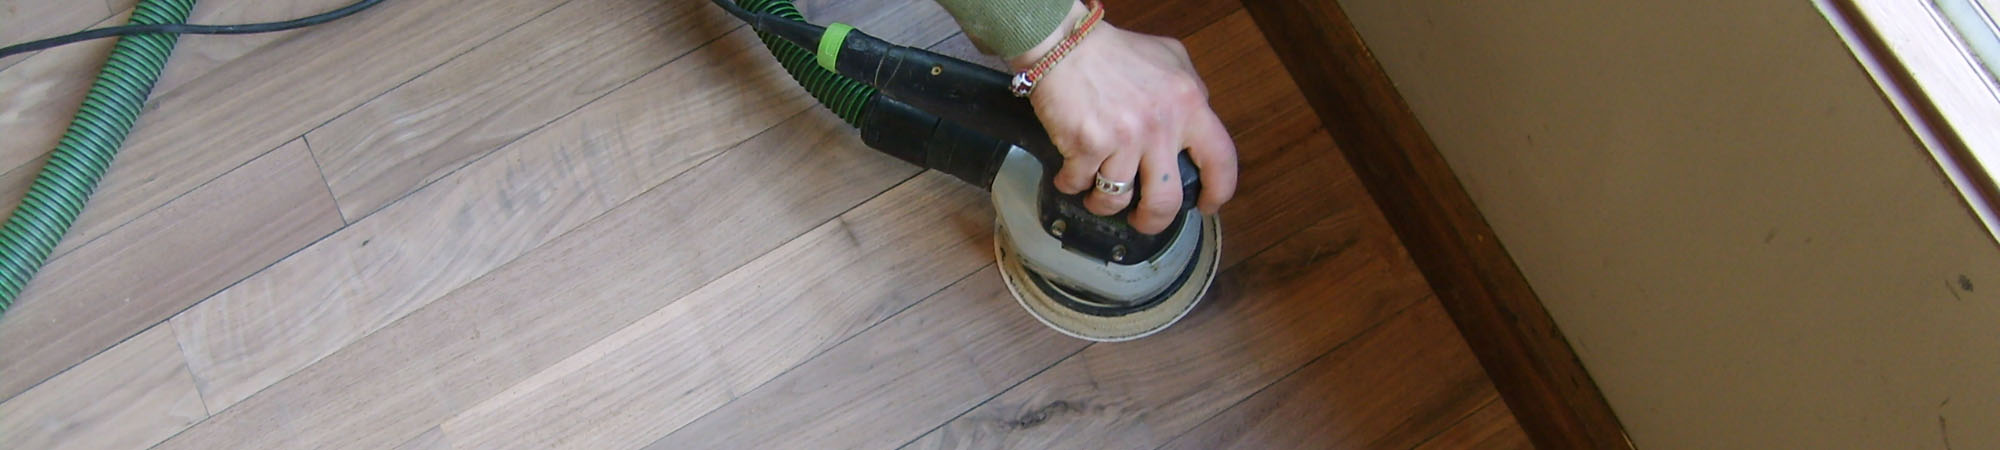 buffing wooden floors